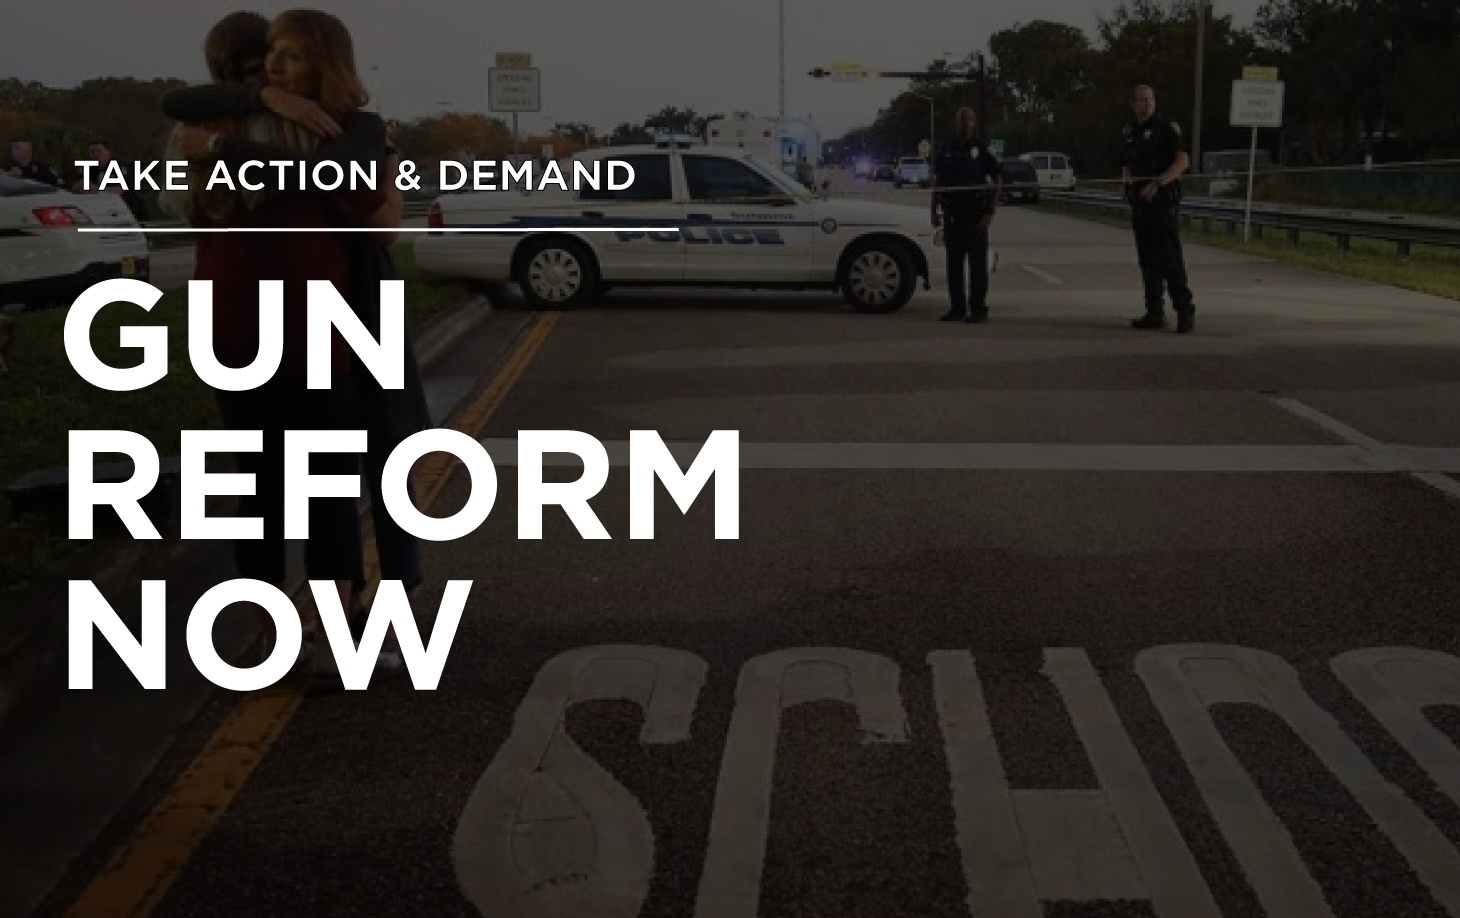 Texans Demand Common Sense Gun Reform